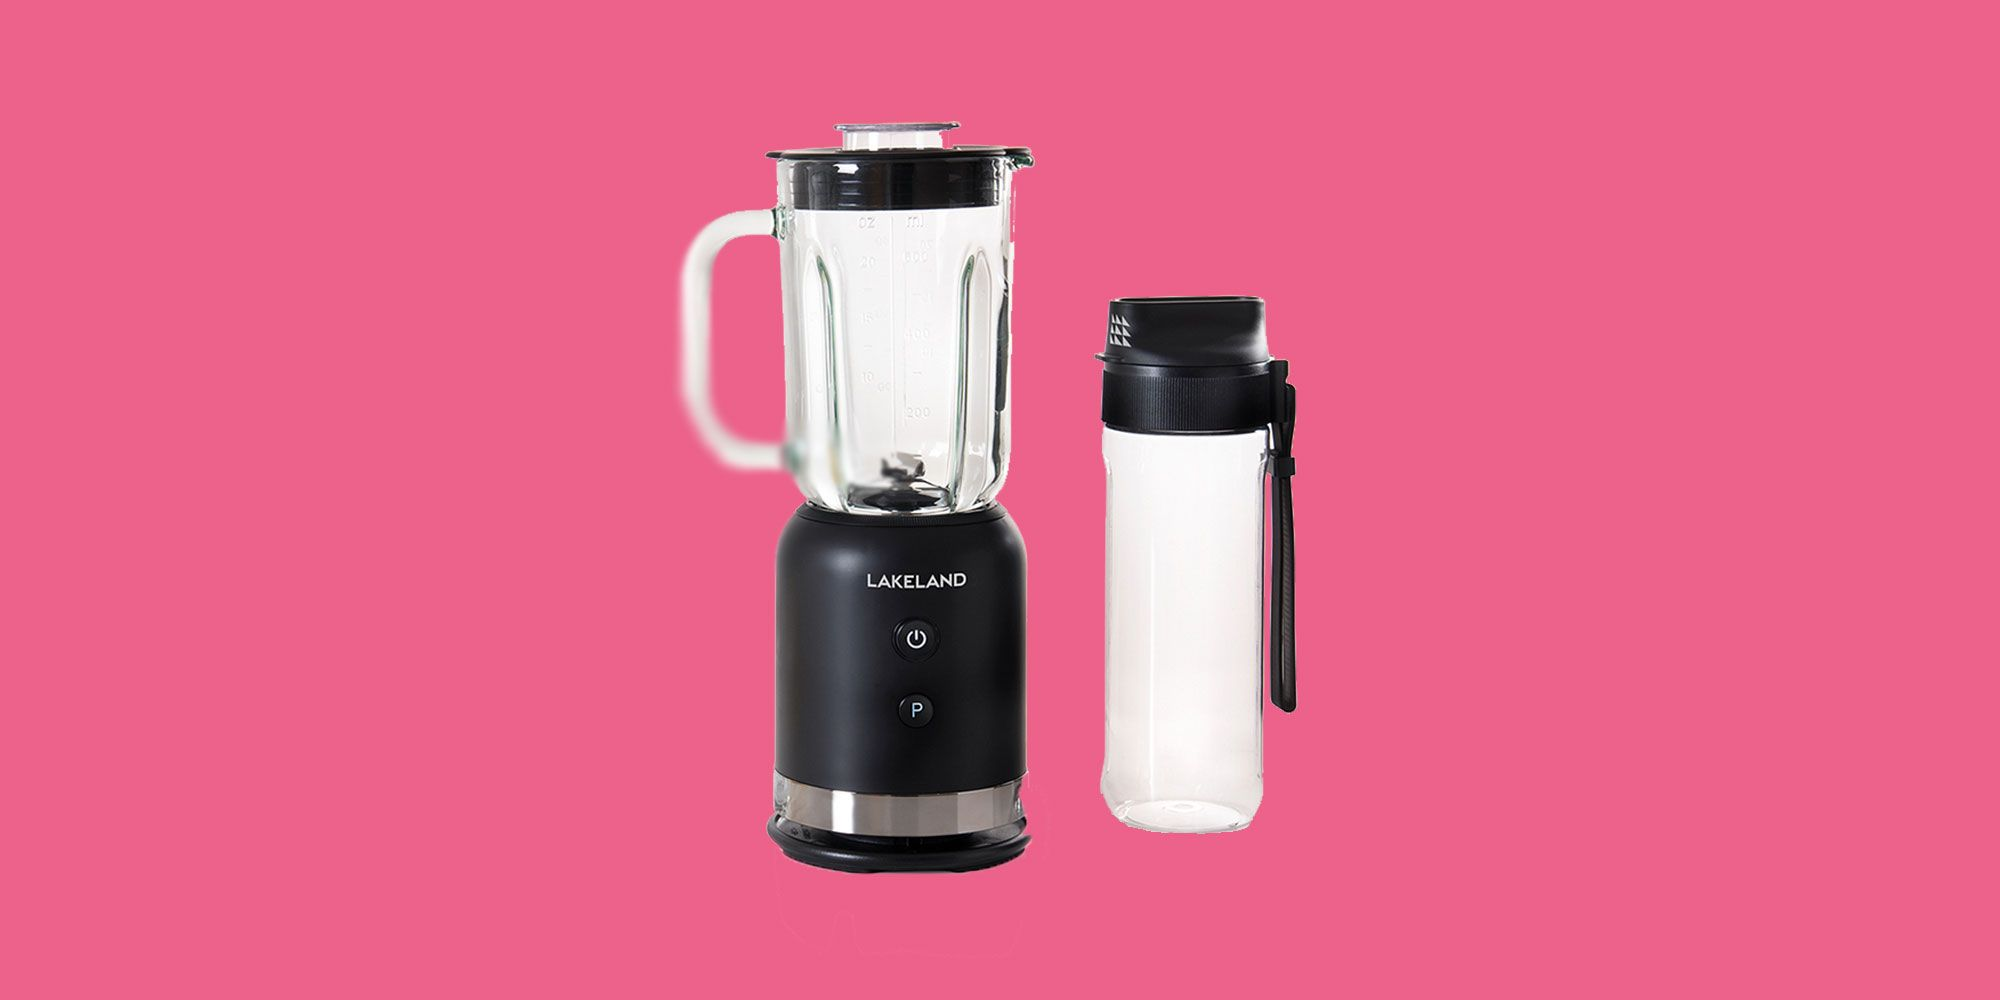 Lakeland Personal Blender Review